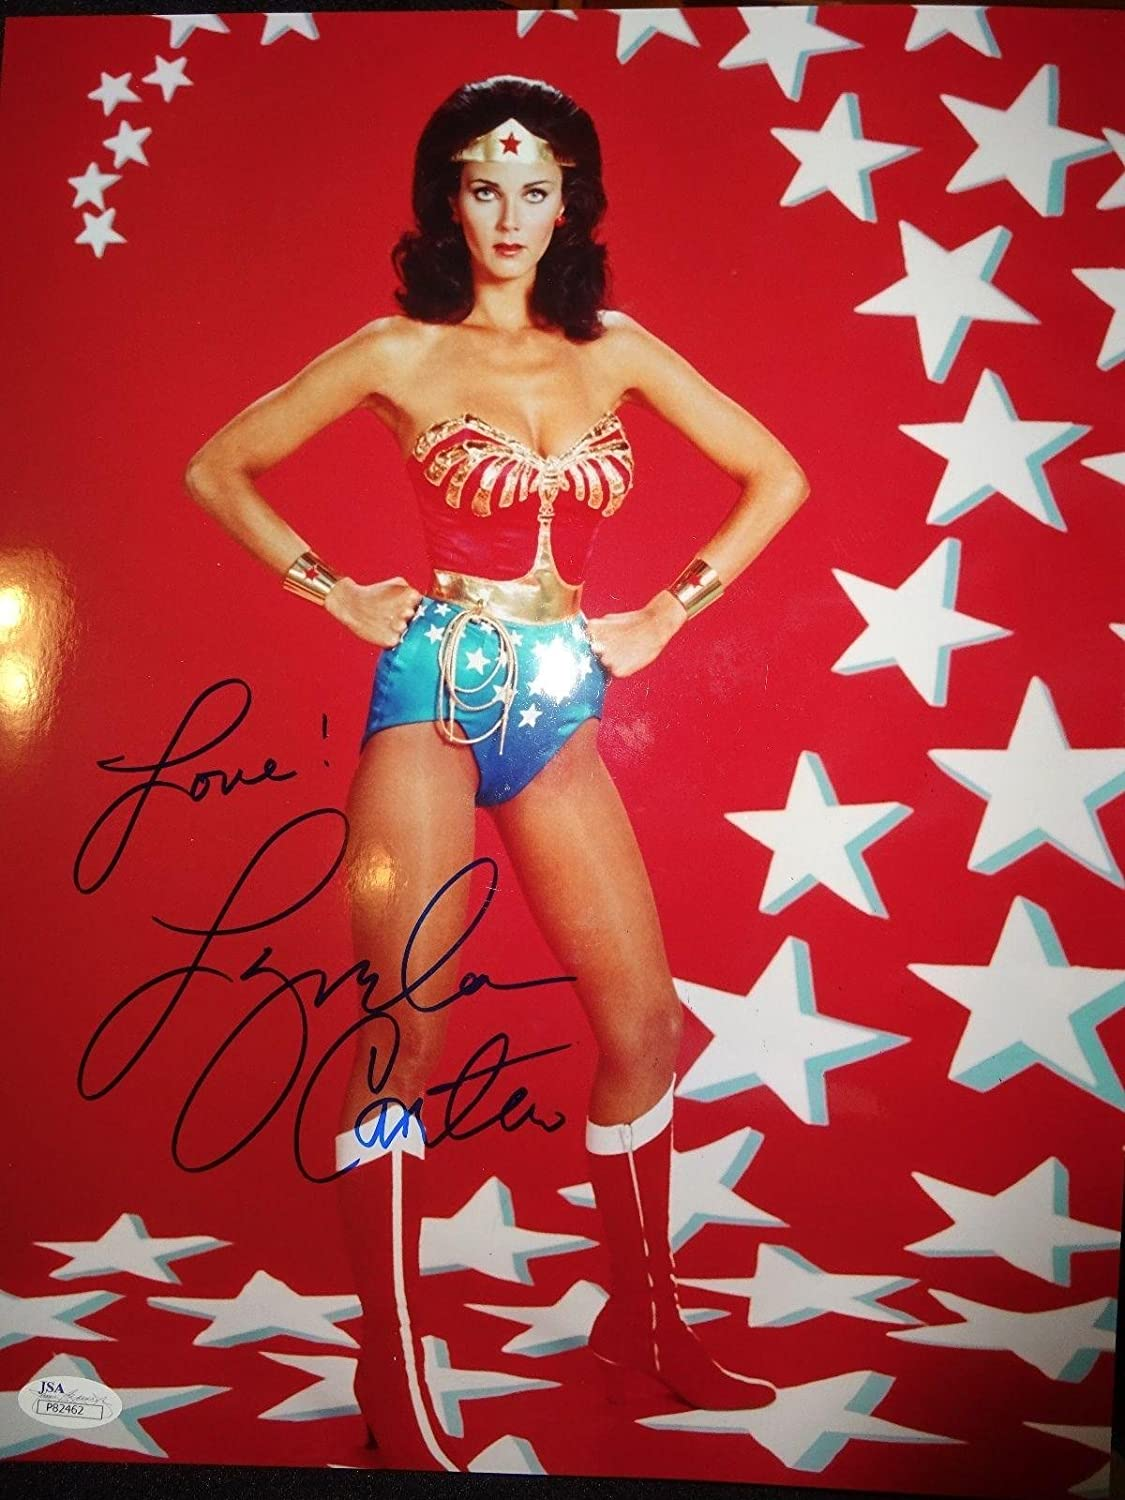 LYNDA CARTER HAND SIGNED OVERSIZED 11x14 PHOTO SEXY WONDER WOMAN - JSA  Certified at Amazon's Entertainment Collectibles Store